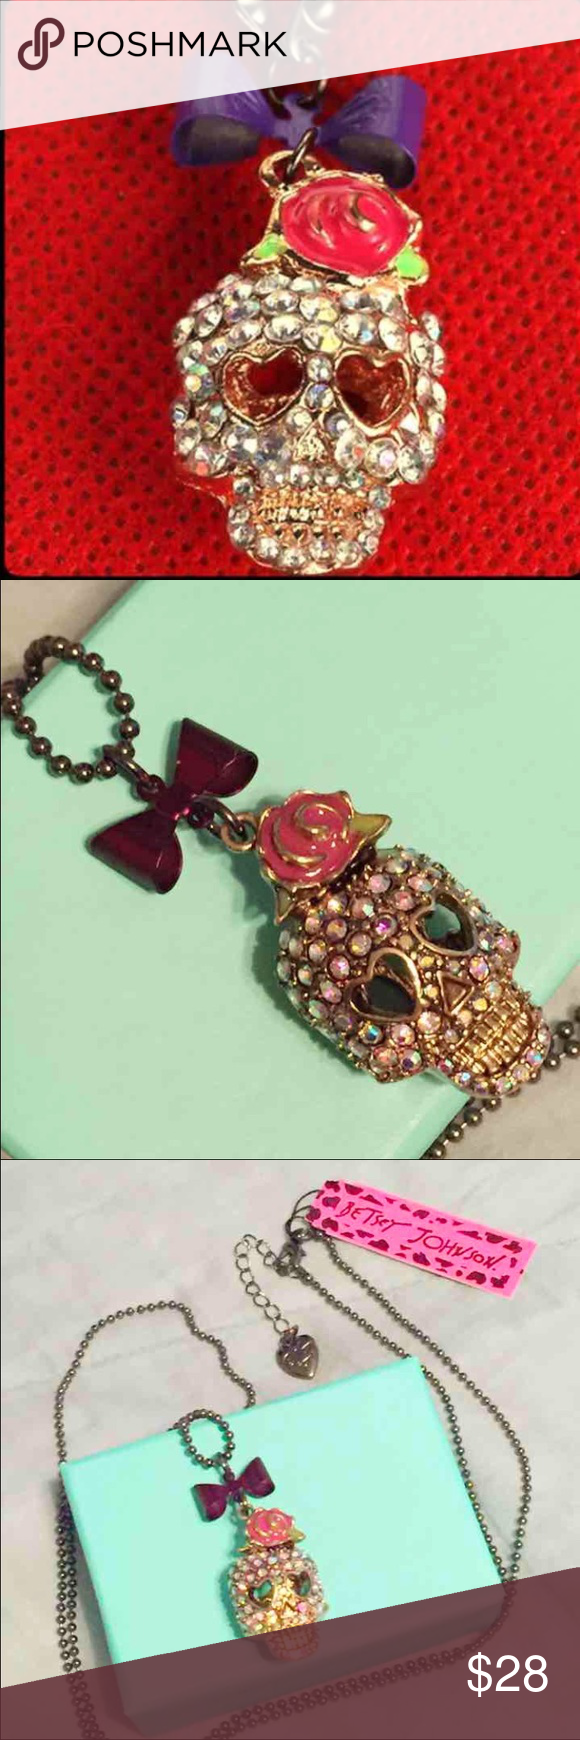 💀BETSEY JOHNSON PUNK SKULL NECKLACE💀 Boutique | Lavender roses ...